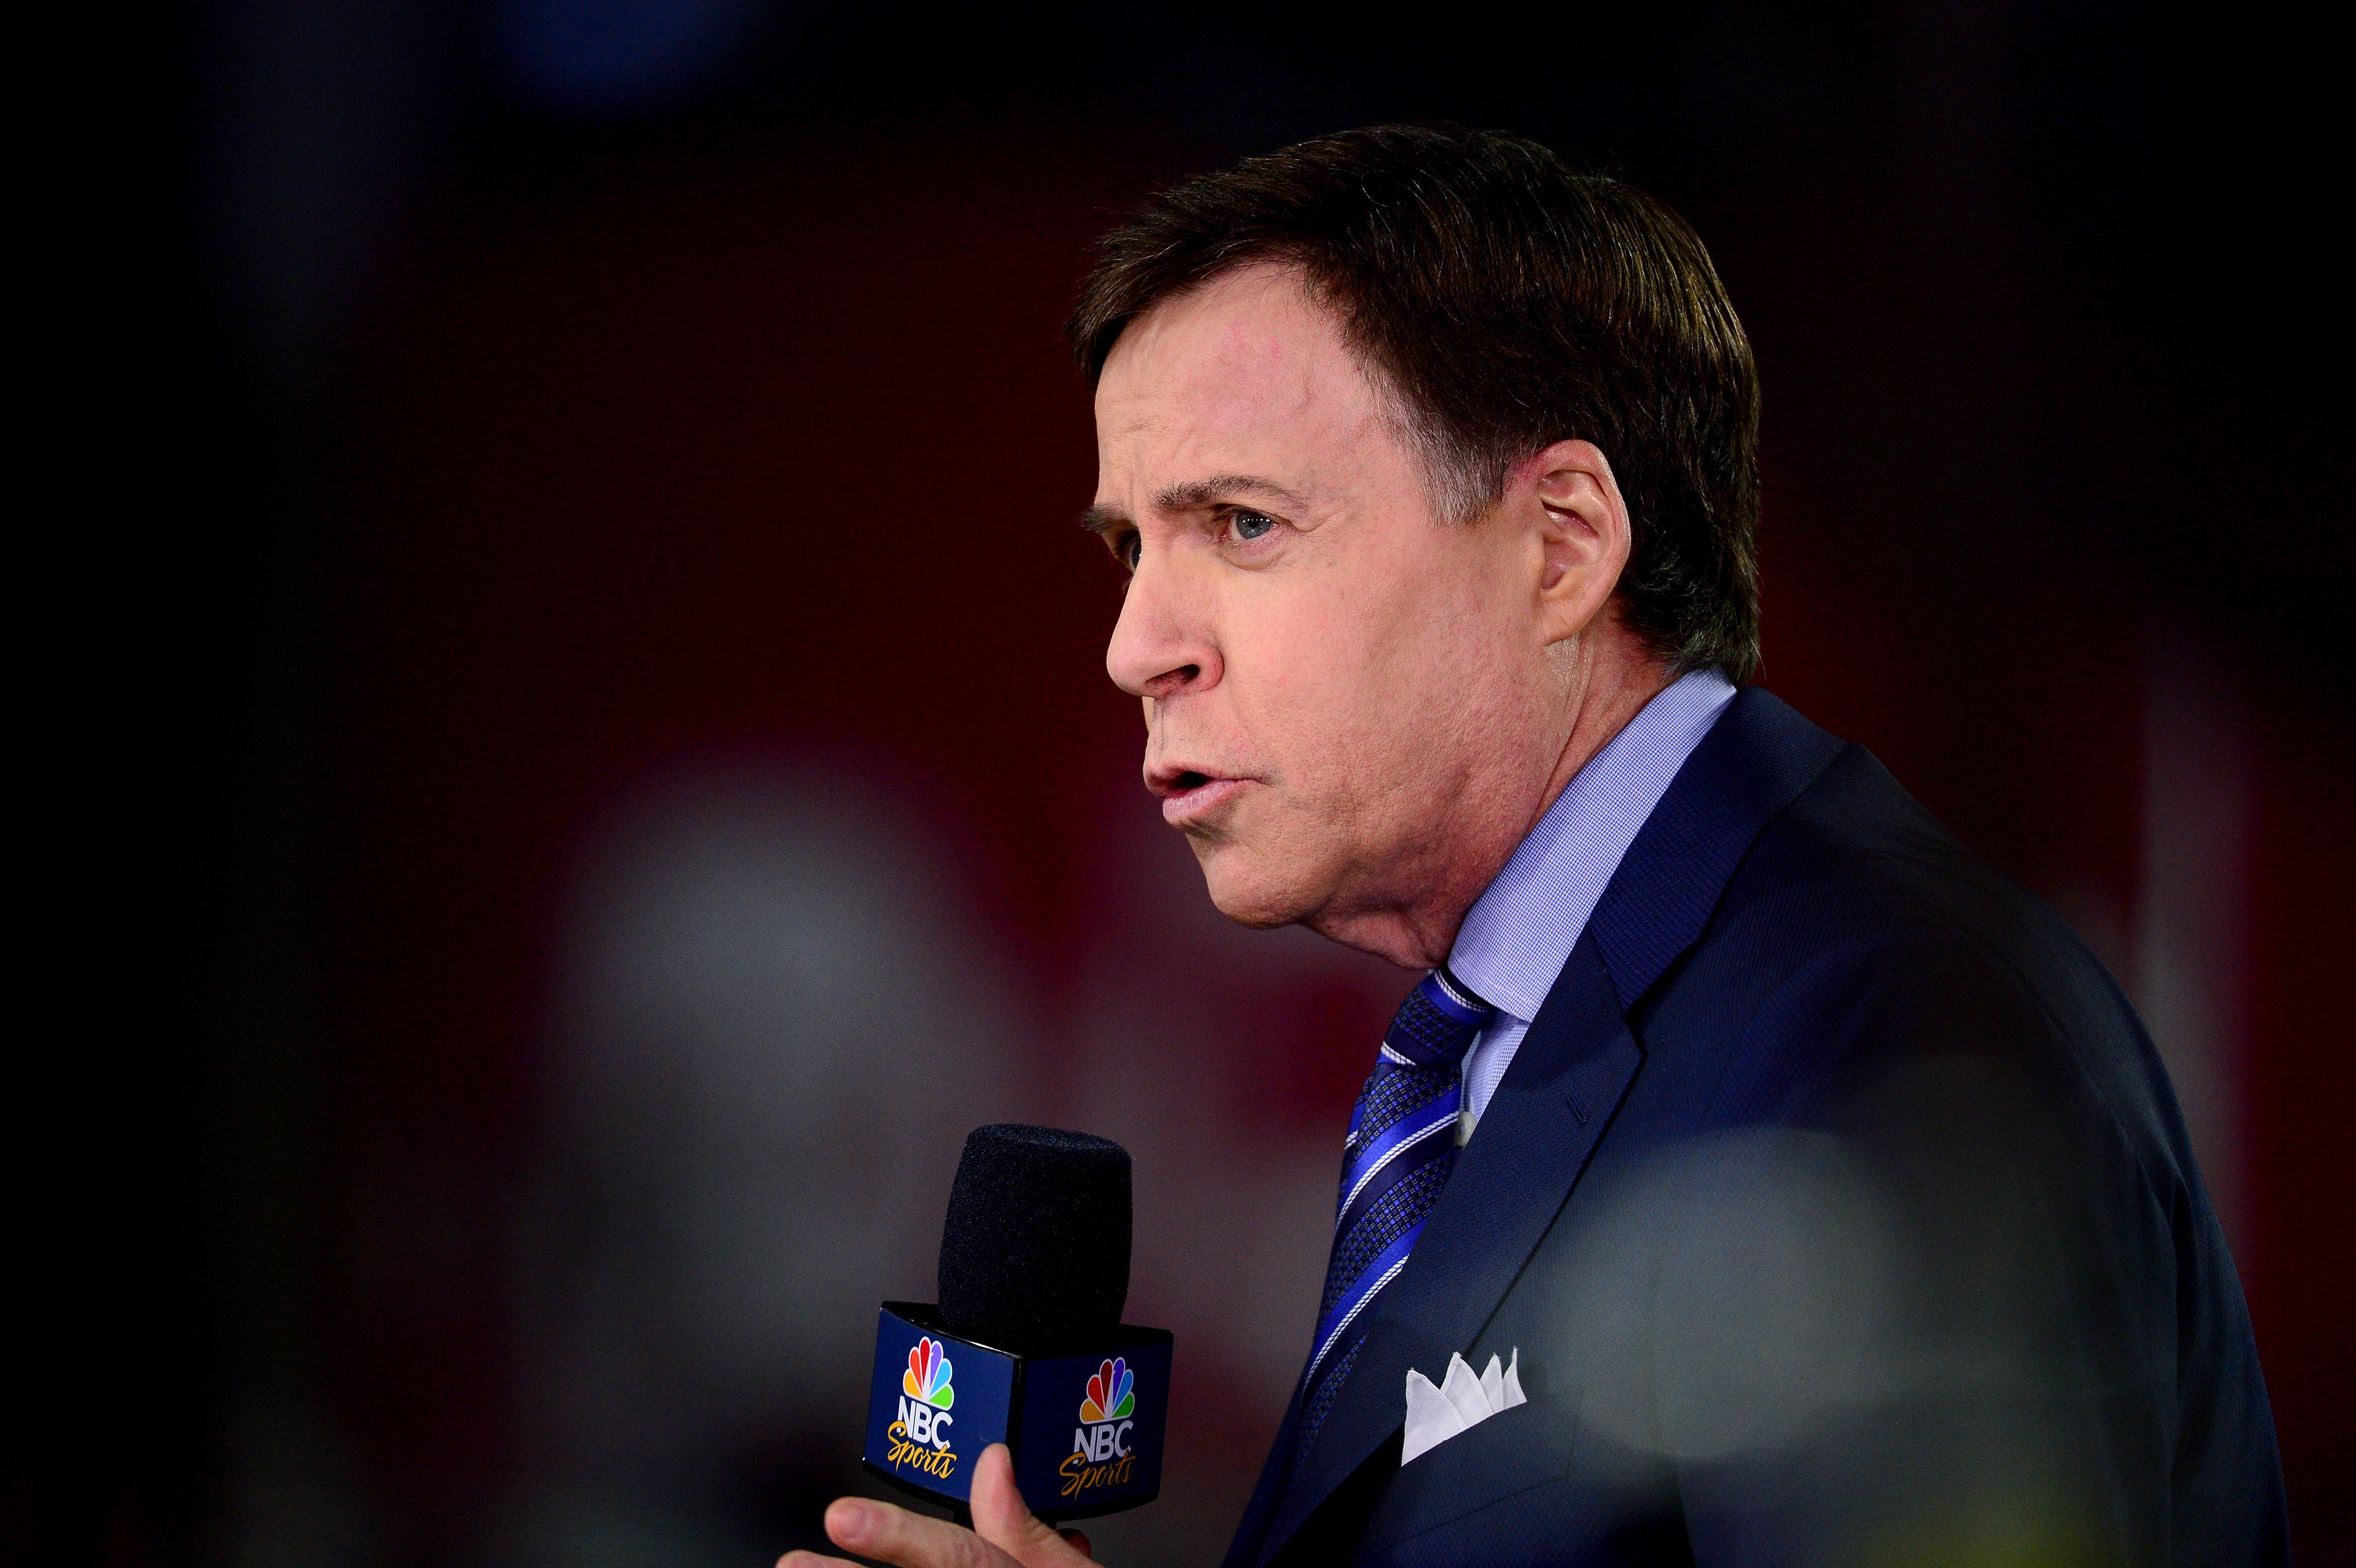 GLENDALE, AZ - JANUARY 16:  Bob Costas of NBC Sports talk before the NFC Divisional Playoff Game at University of Phoenix Stadium on January 16, 2016 in Glendale, Arizona.  (Photo by Jennifer Stewart/Getty Images)